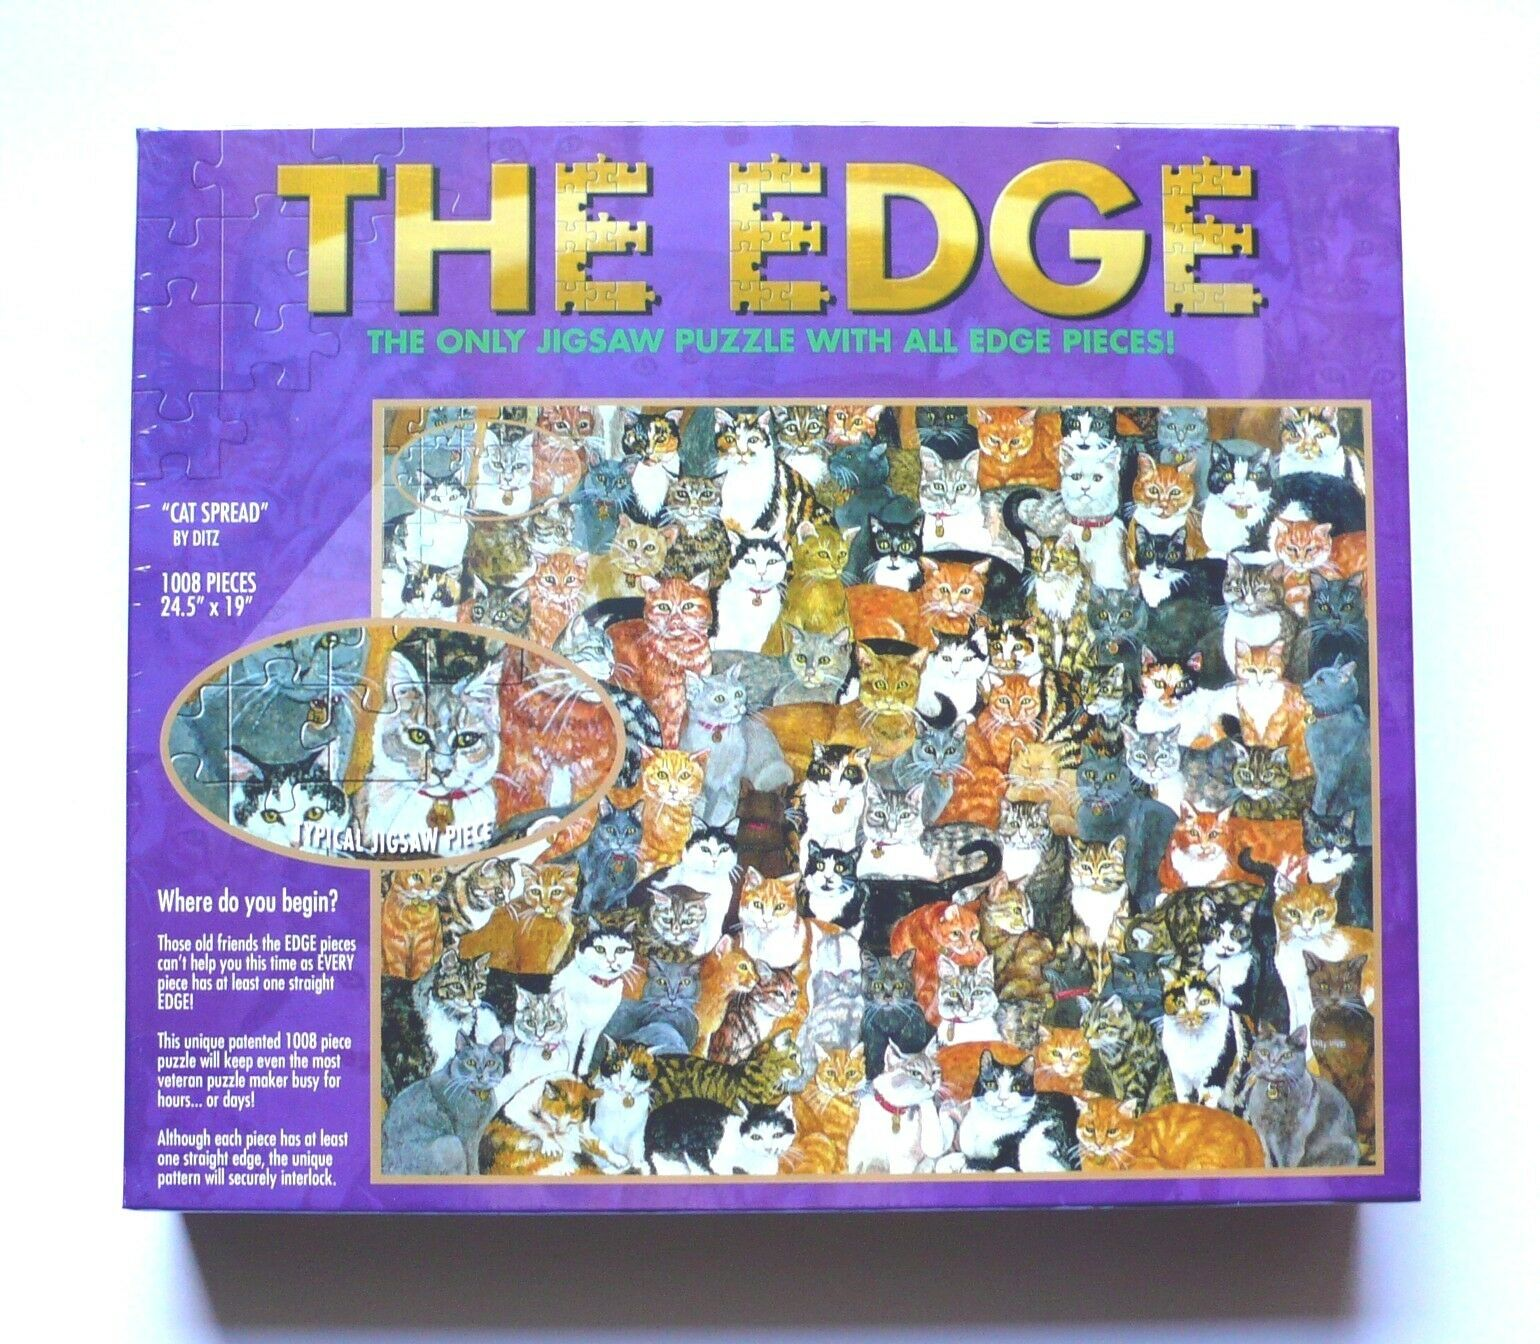 Set of 3 Challenging Jigsaw Puzzles - - - The Edge - Ditz - 3 x 1008 pieces 939ddb